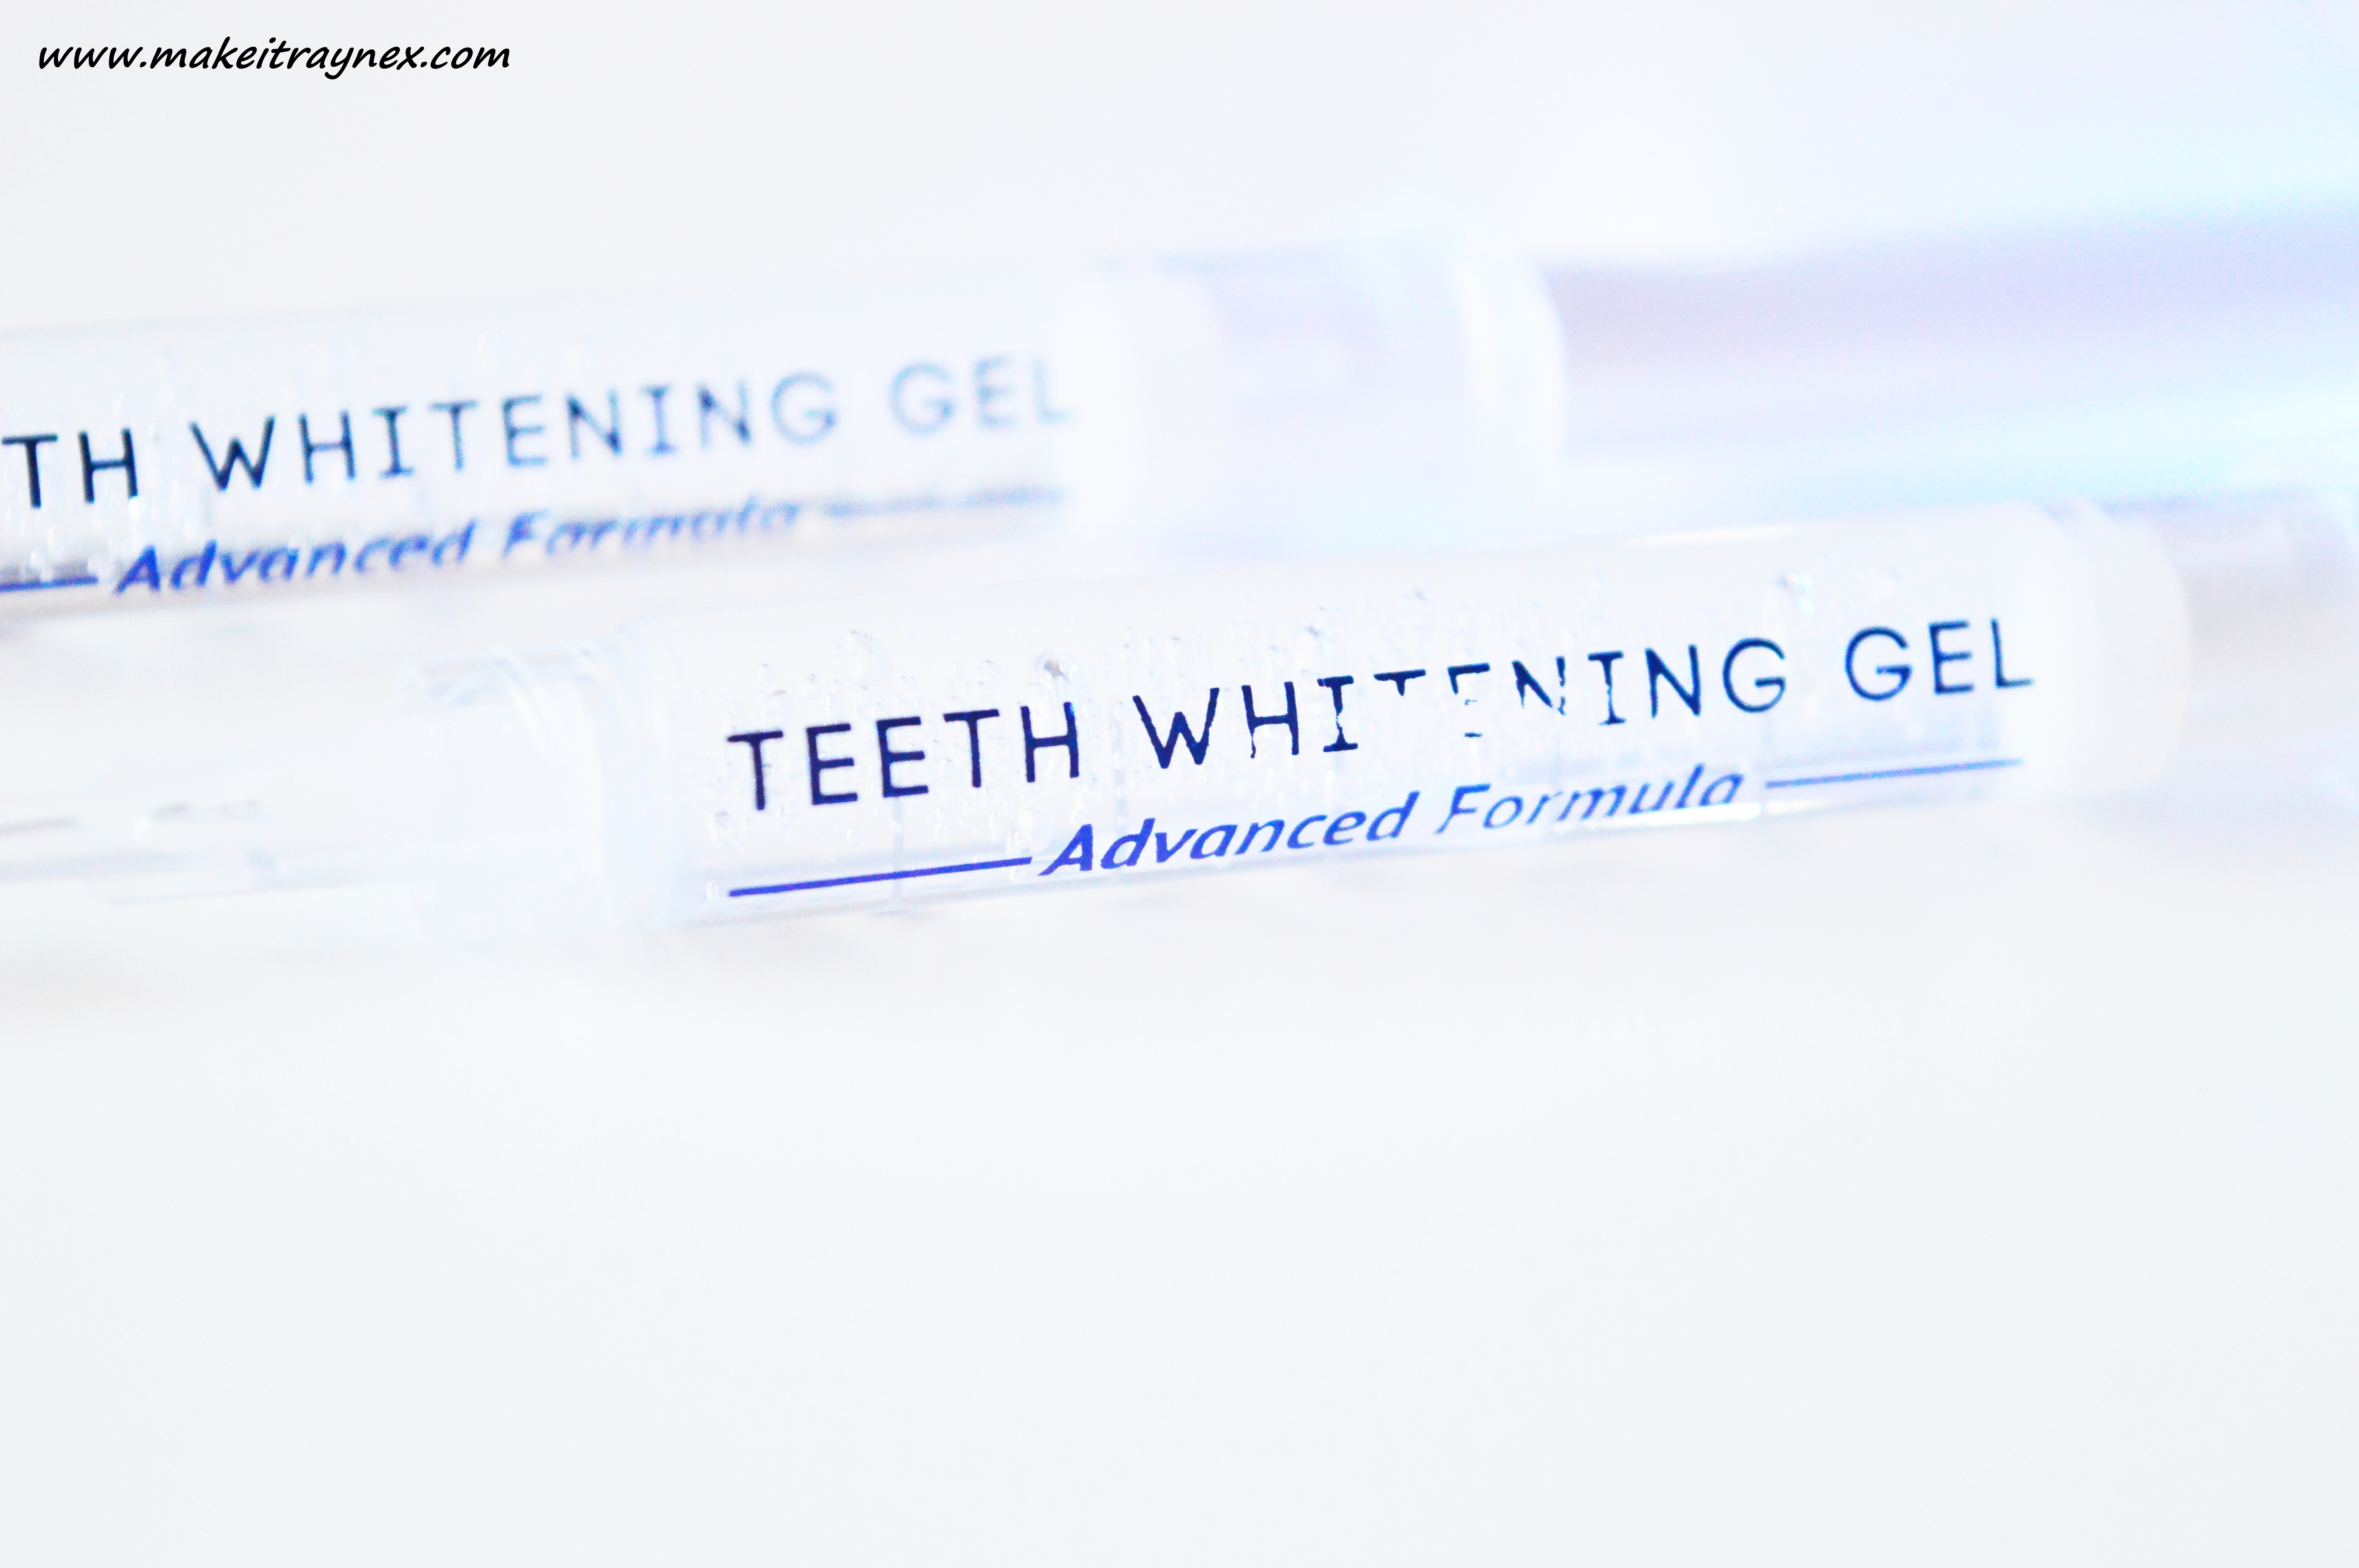 Express Smile Atlanta – Home in One Teeth Whitening Kit {REVIEW}